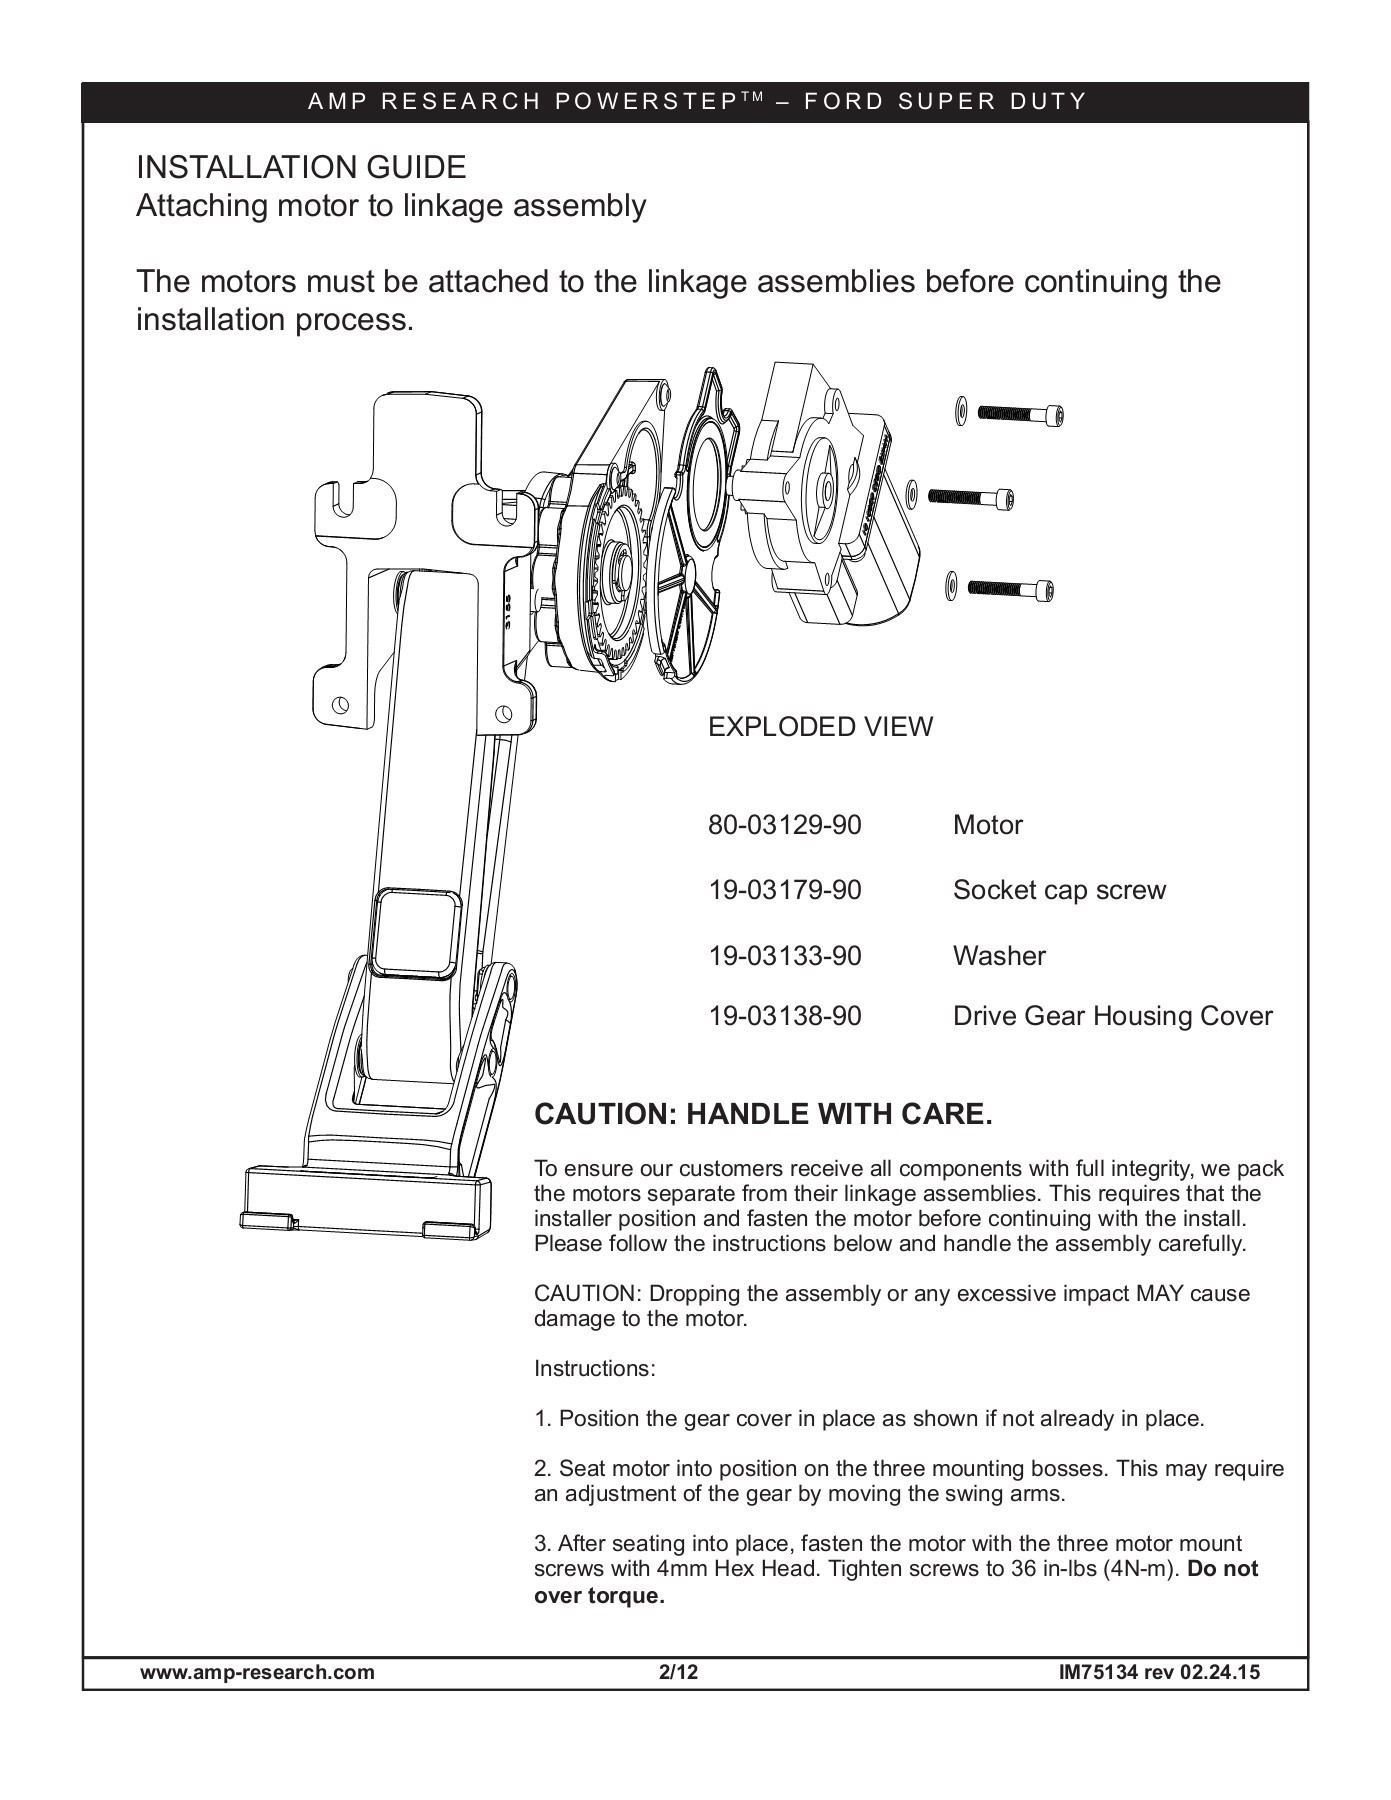 Amp Research Power Step Wiring Diagram Skill Level 1 2 3 4 Amp Research Pages 1 13 Text Of Amp Research Power Step Wiring Diagram Hoveround Wiring Diagram